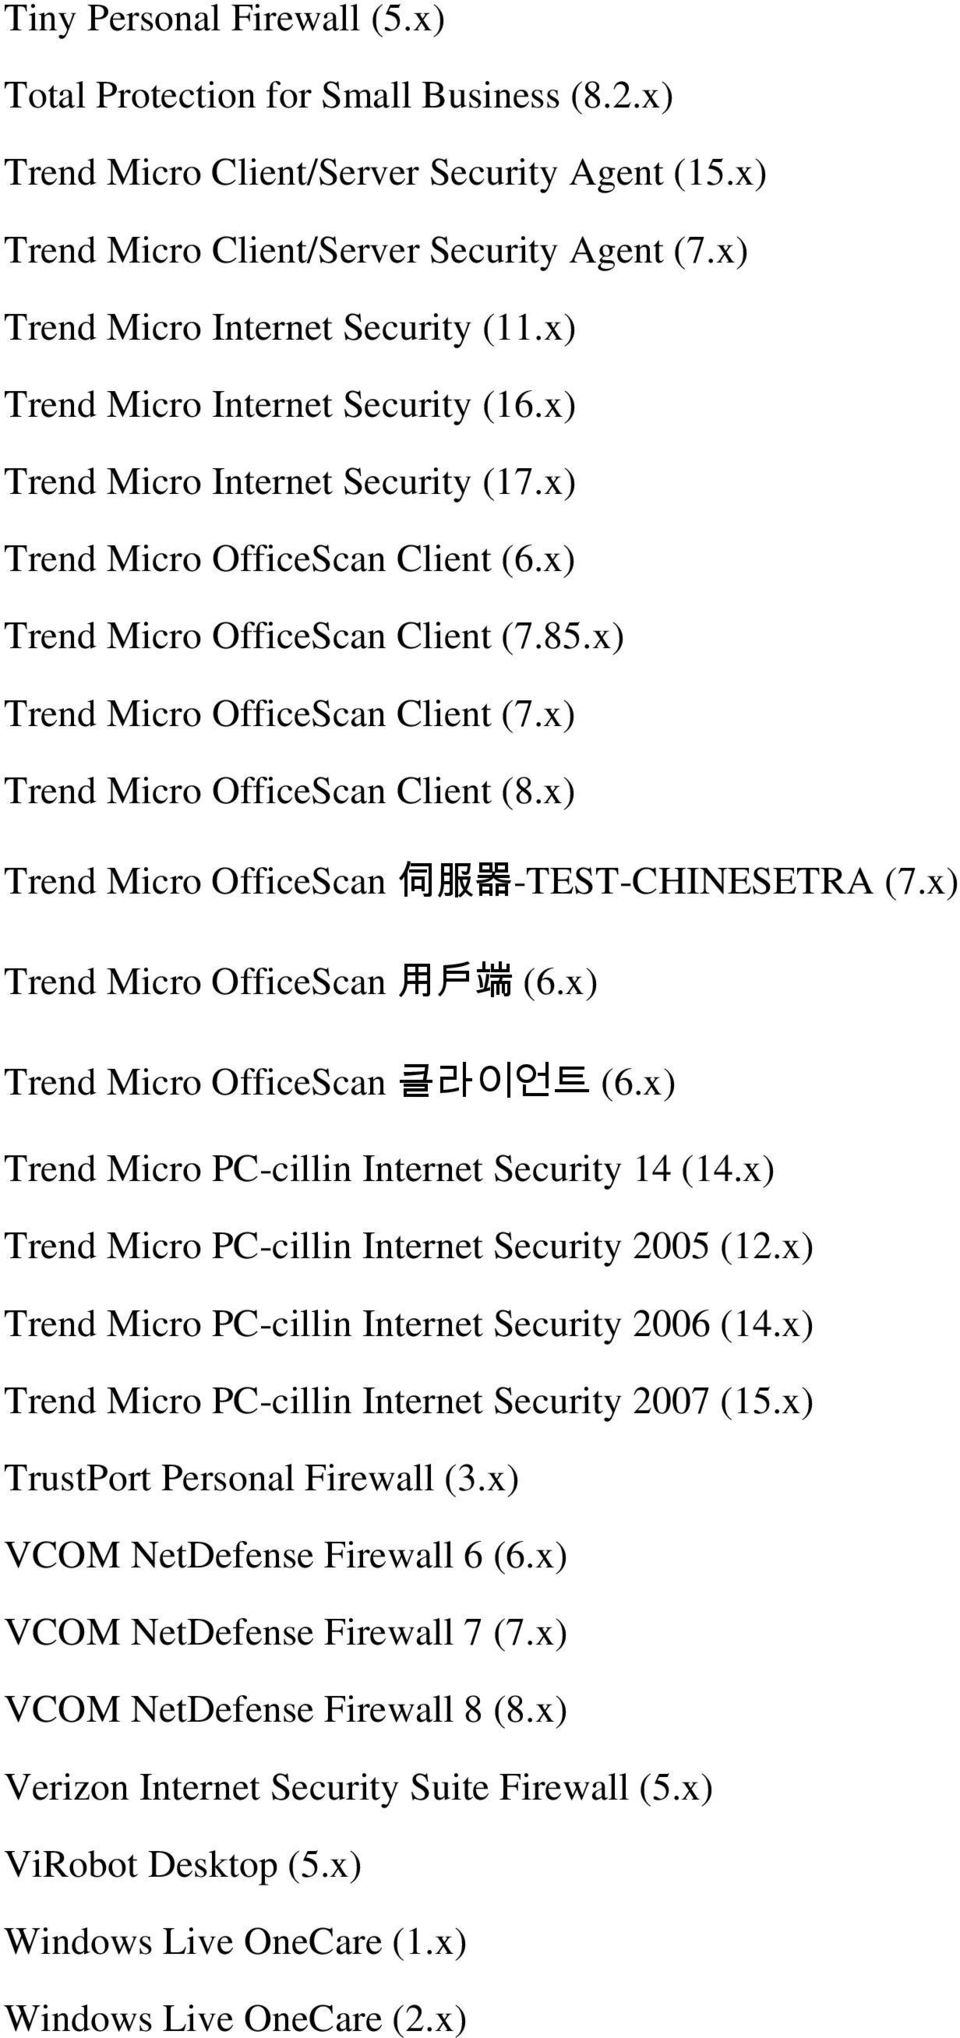 x) Trend Micro OfficeScan Client (7.x) Trend Micro OfficeScan Client (8.x) Trend Micro OfficeScan 伺 服 器 -TEST-CHINESETRA (7.x) Trend Micro OfficeScan 用 戶 端 (6.x) Trend Micro OfficeScan 클라이언트 (6.